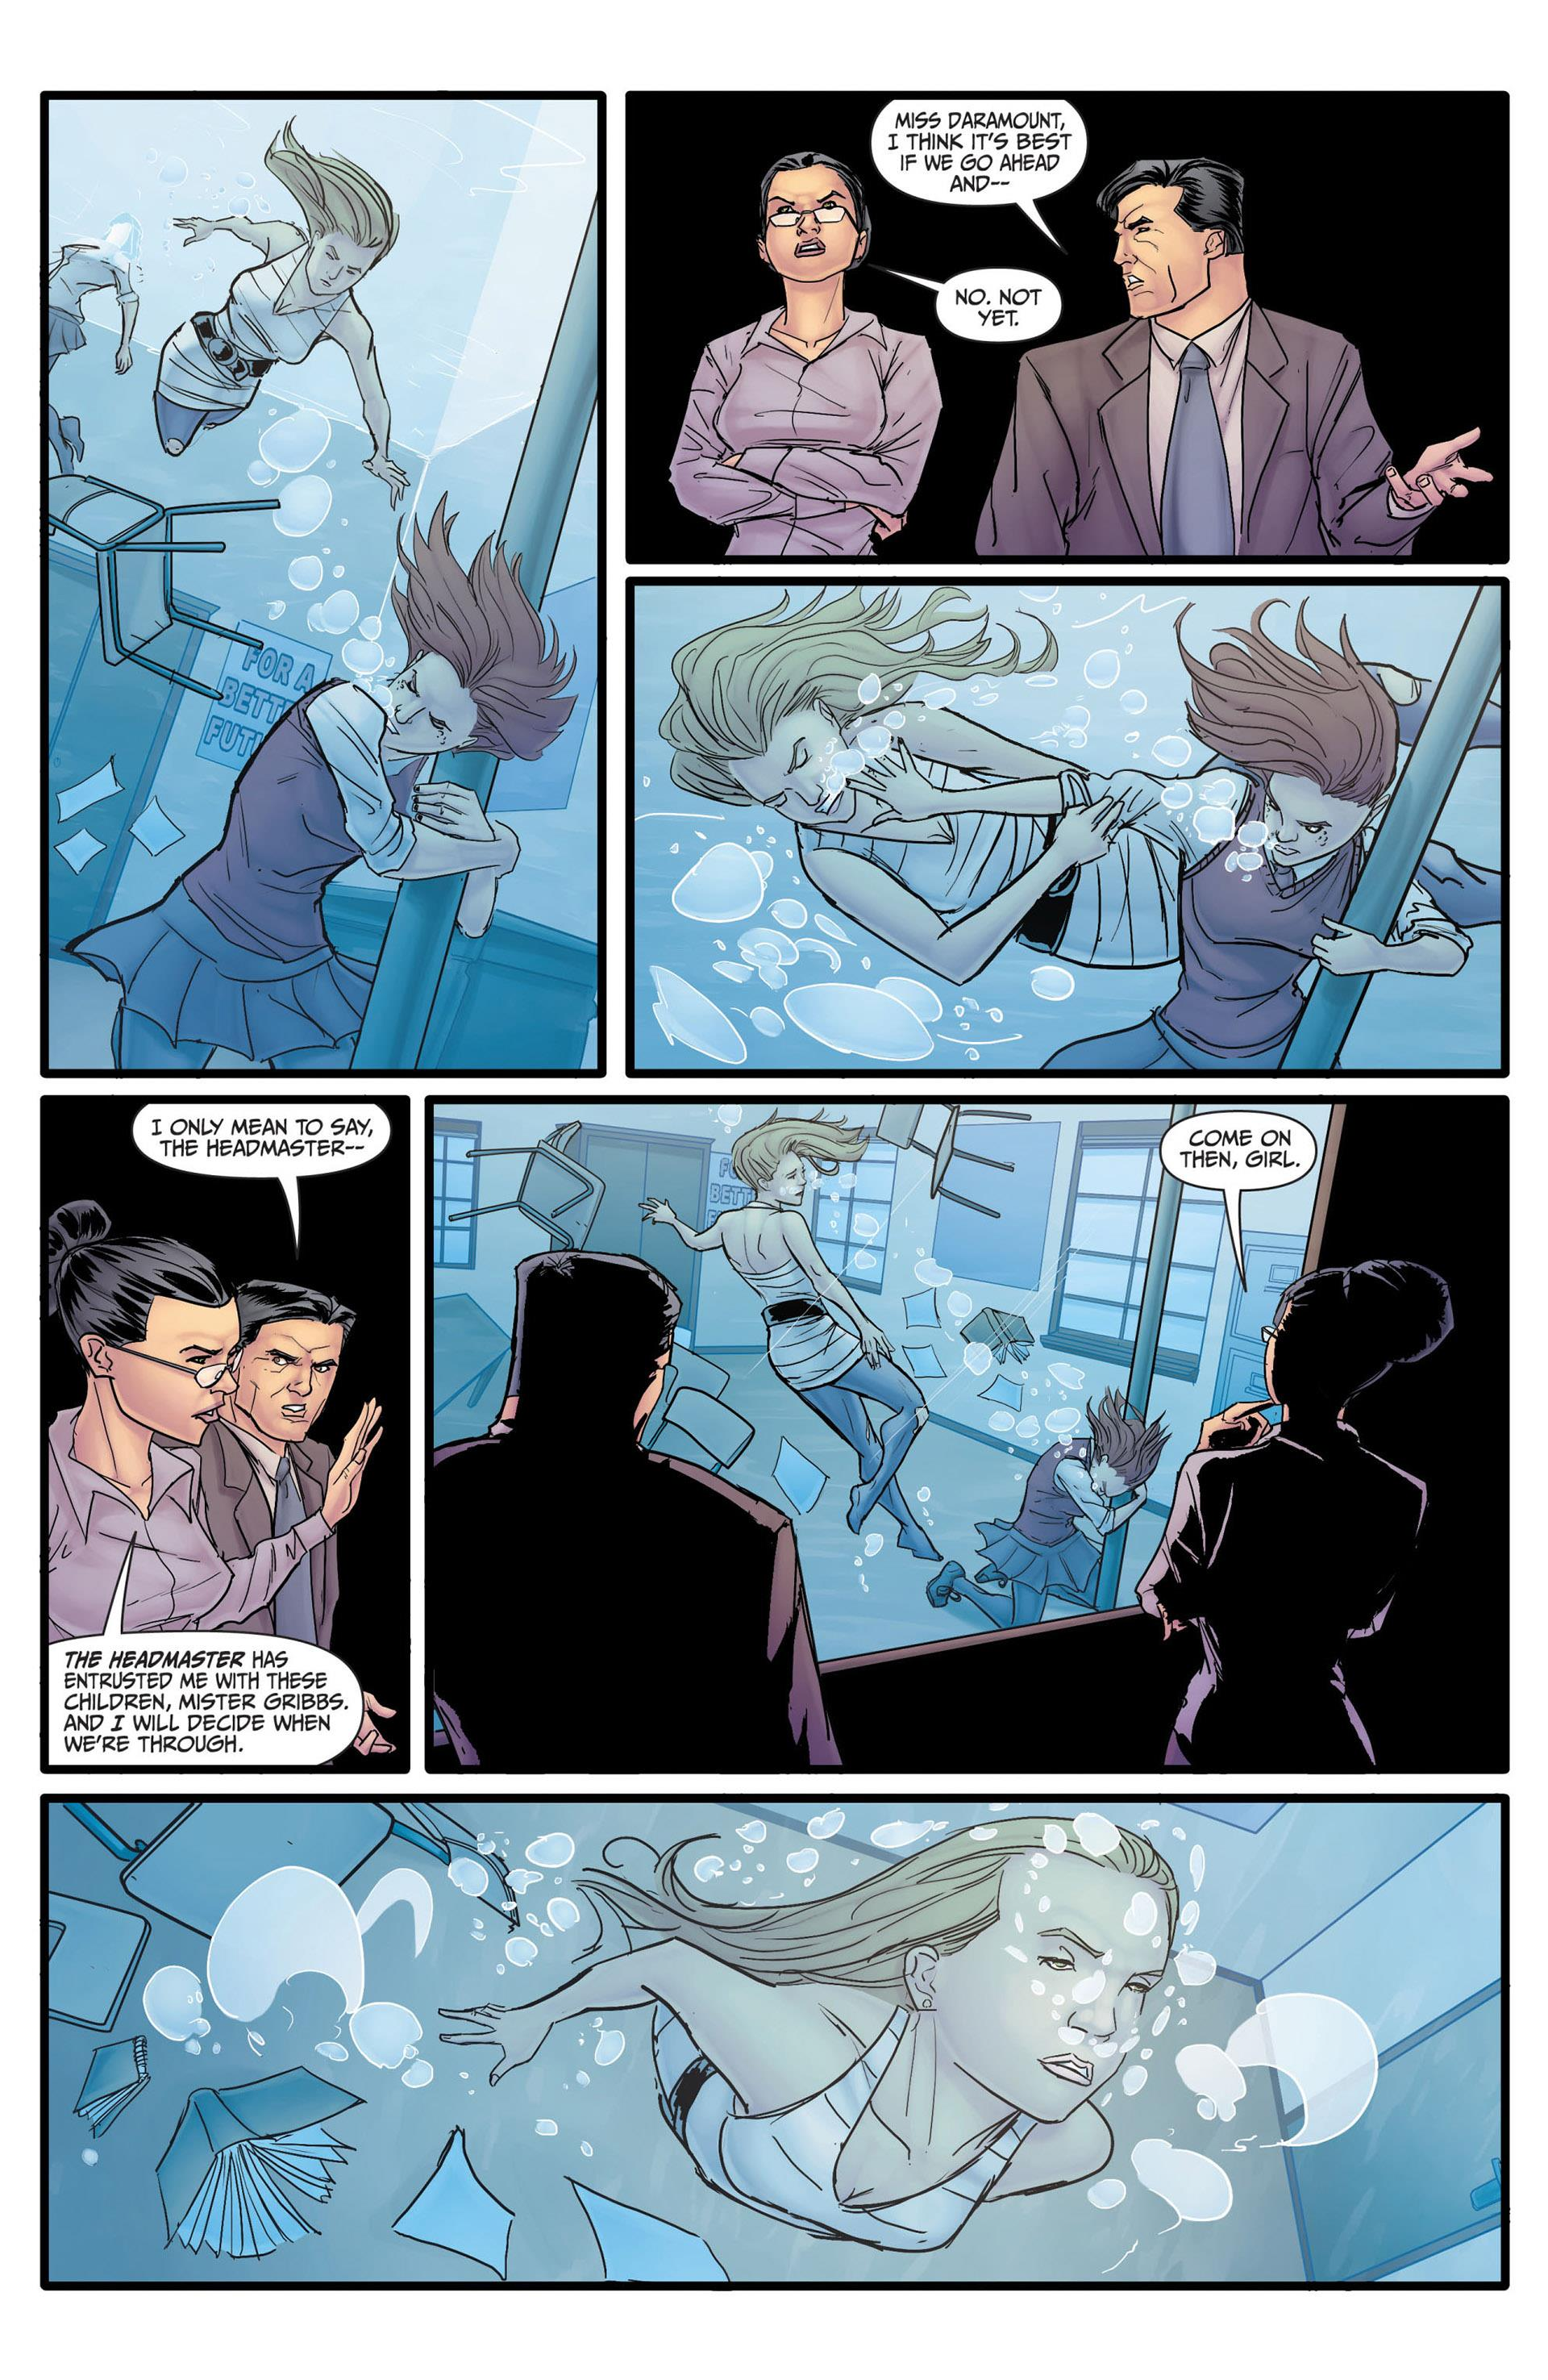 Morning Glories Volume One review